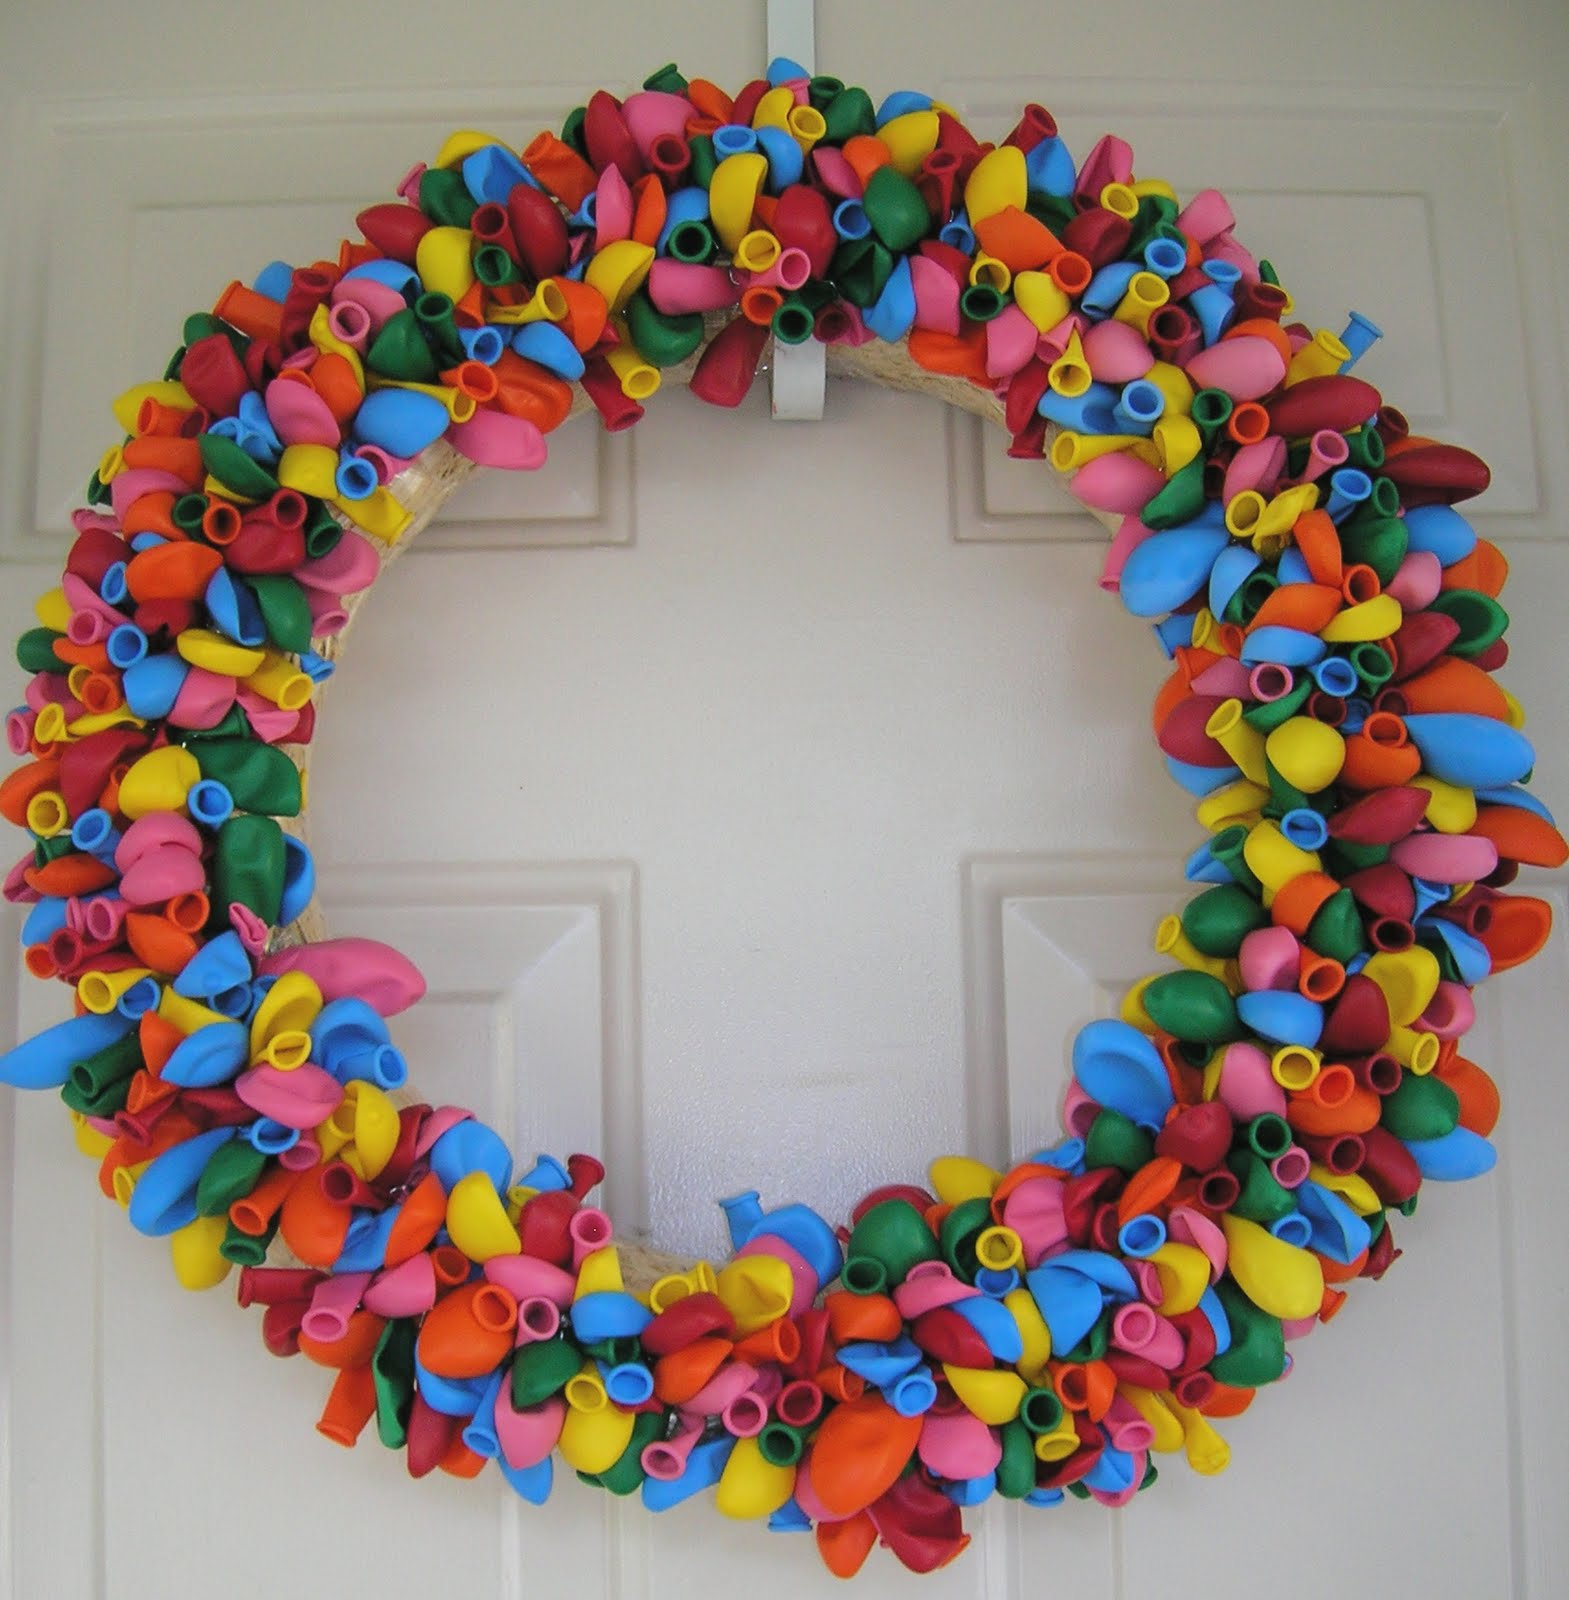 The Birthday Balloon Wreath